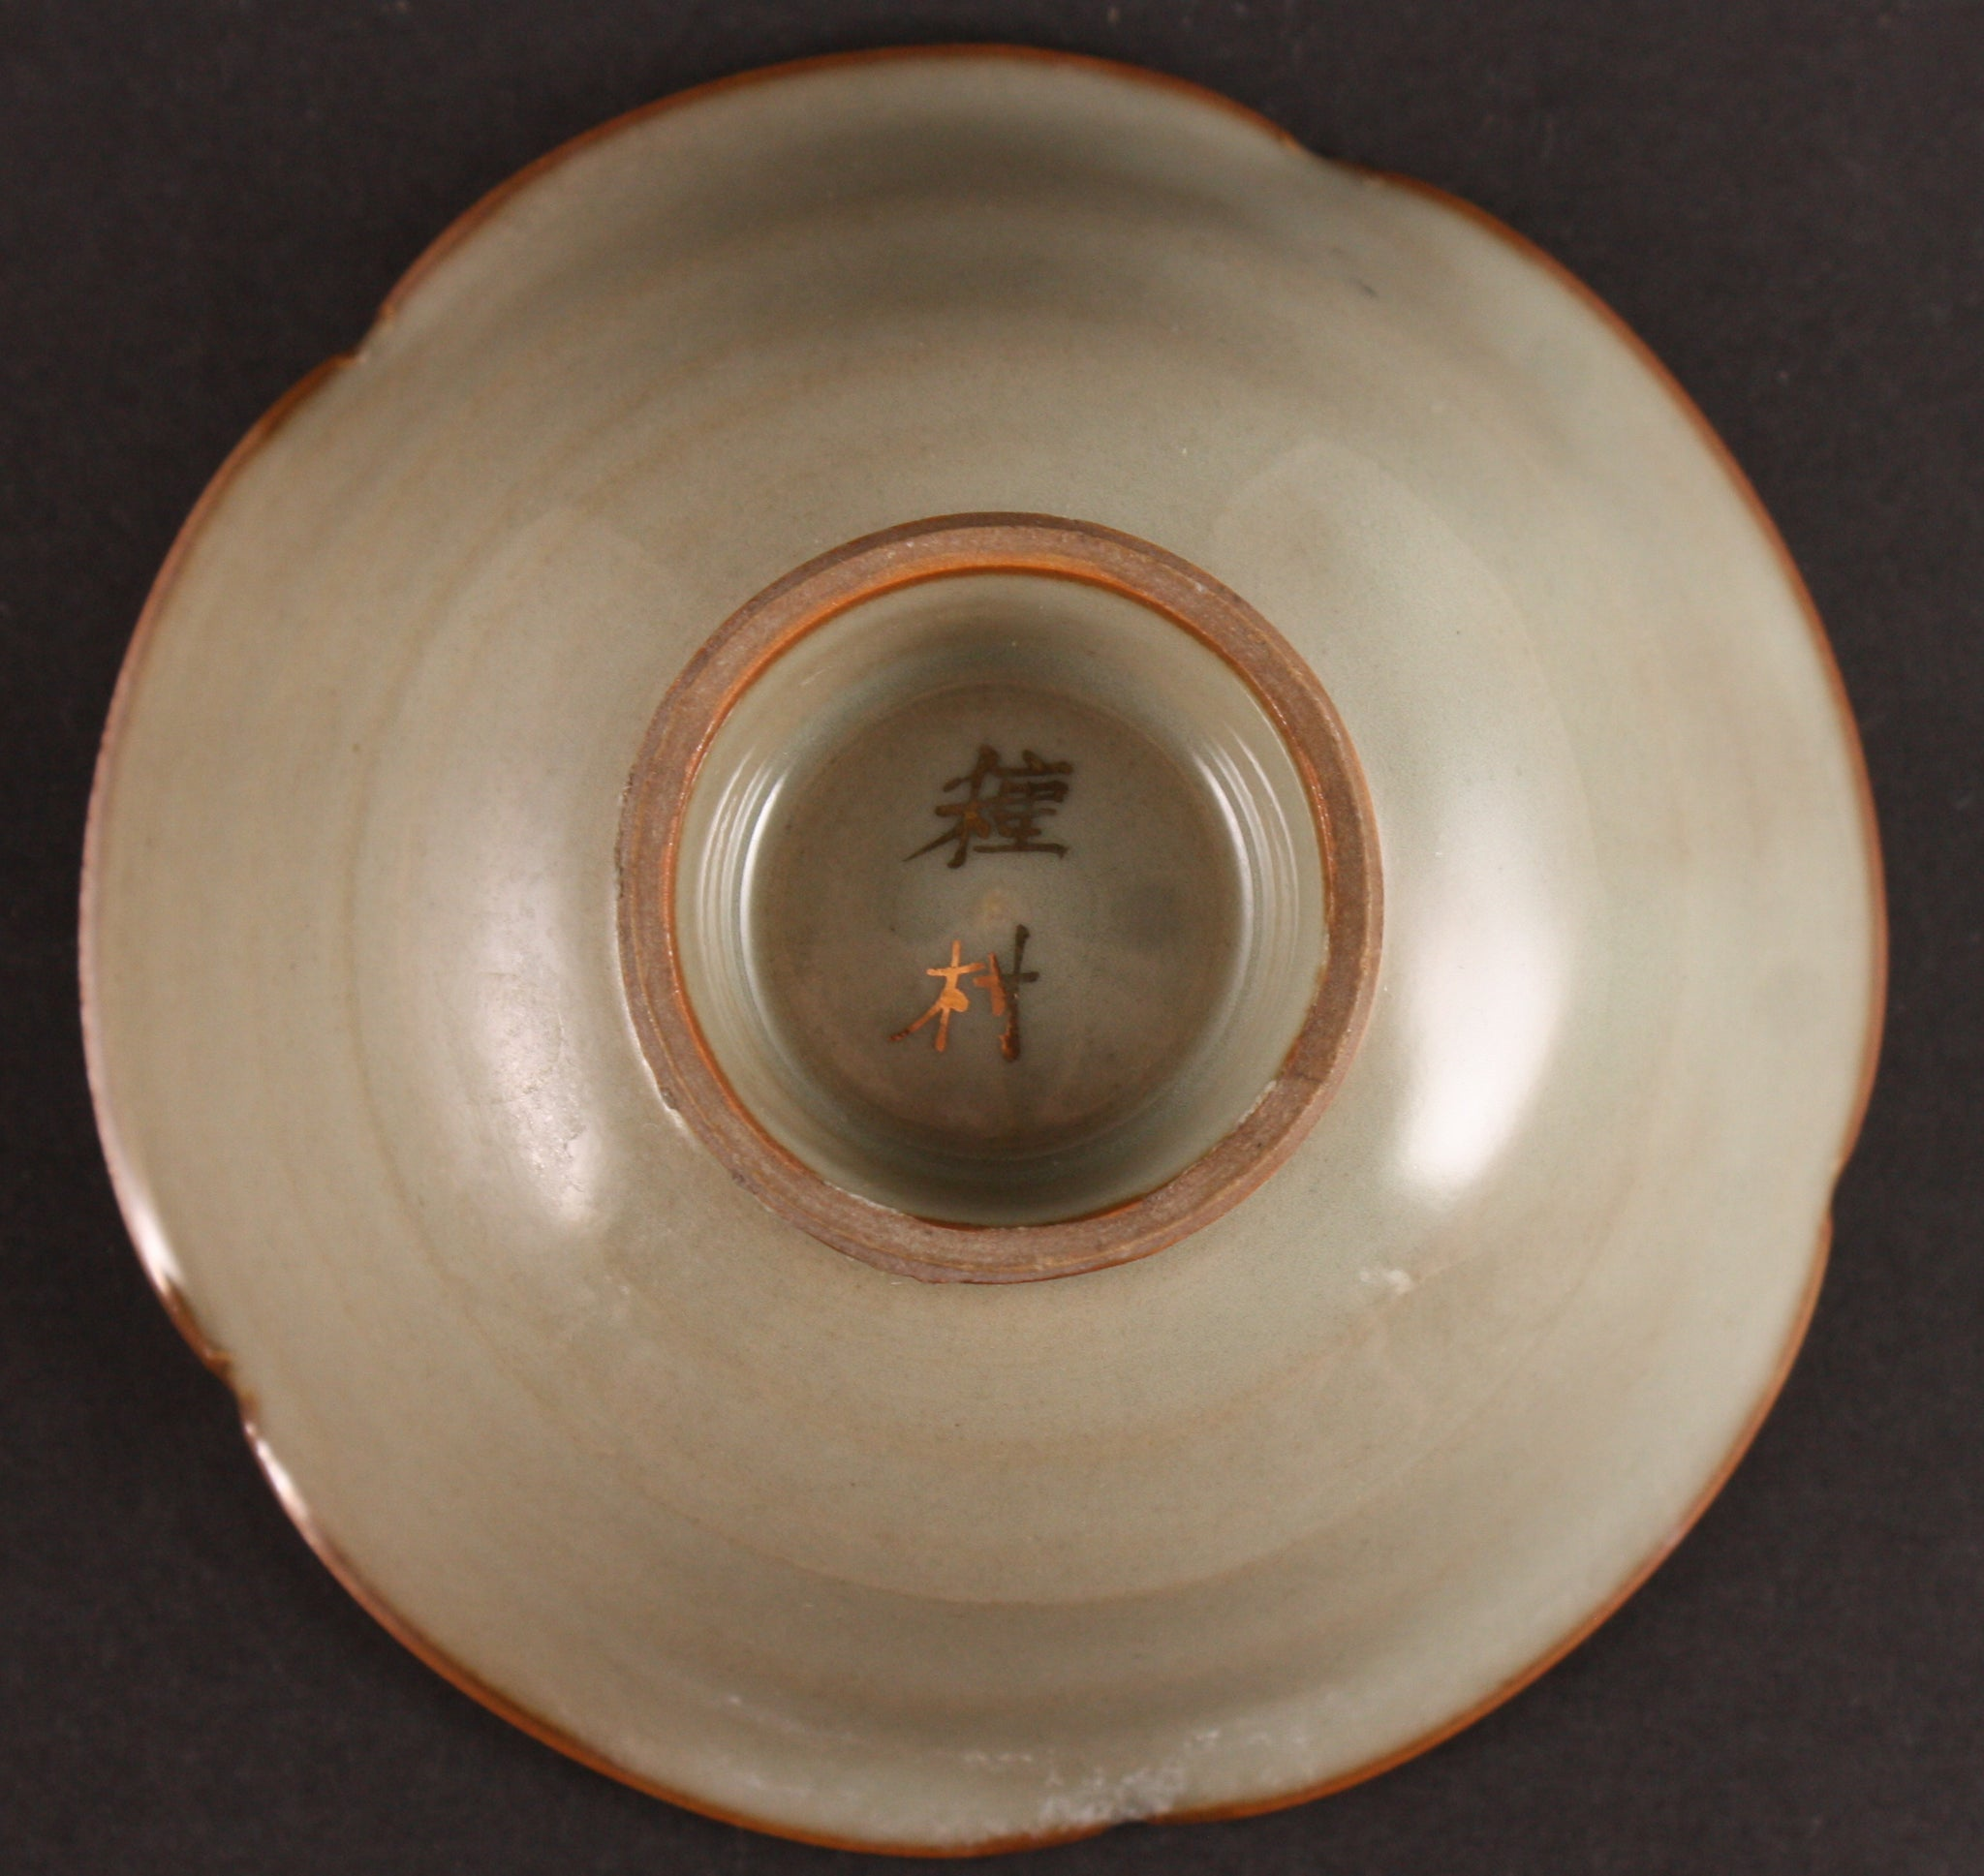 Antique Japanese Military Blossom Star Furlough Commemoration Army Sake Cup